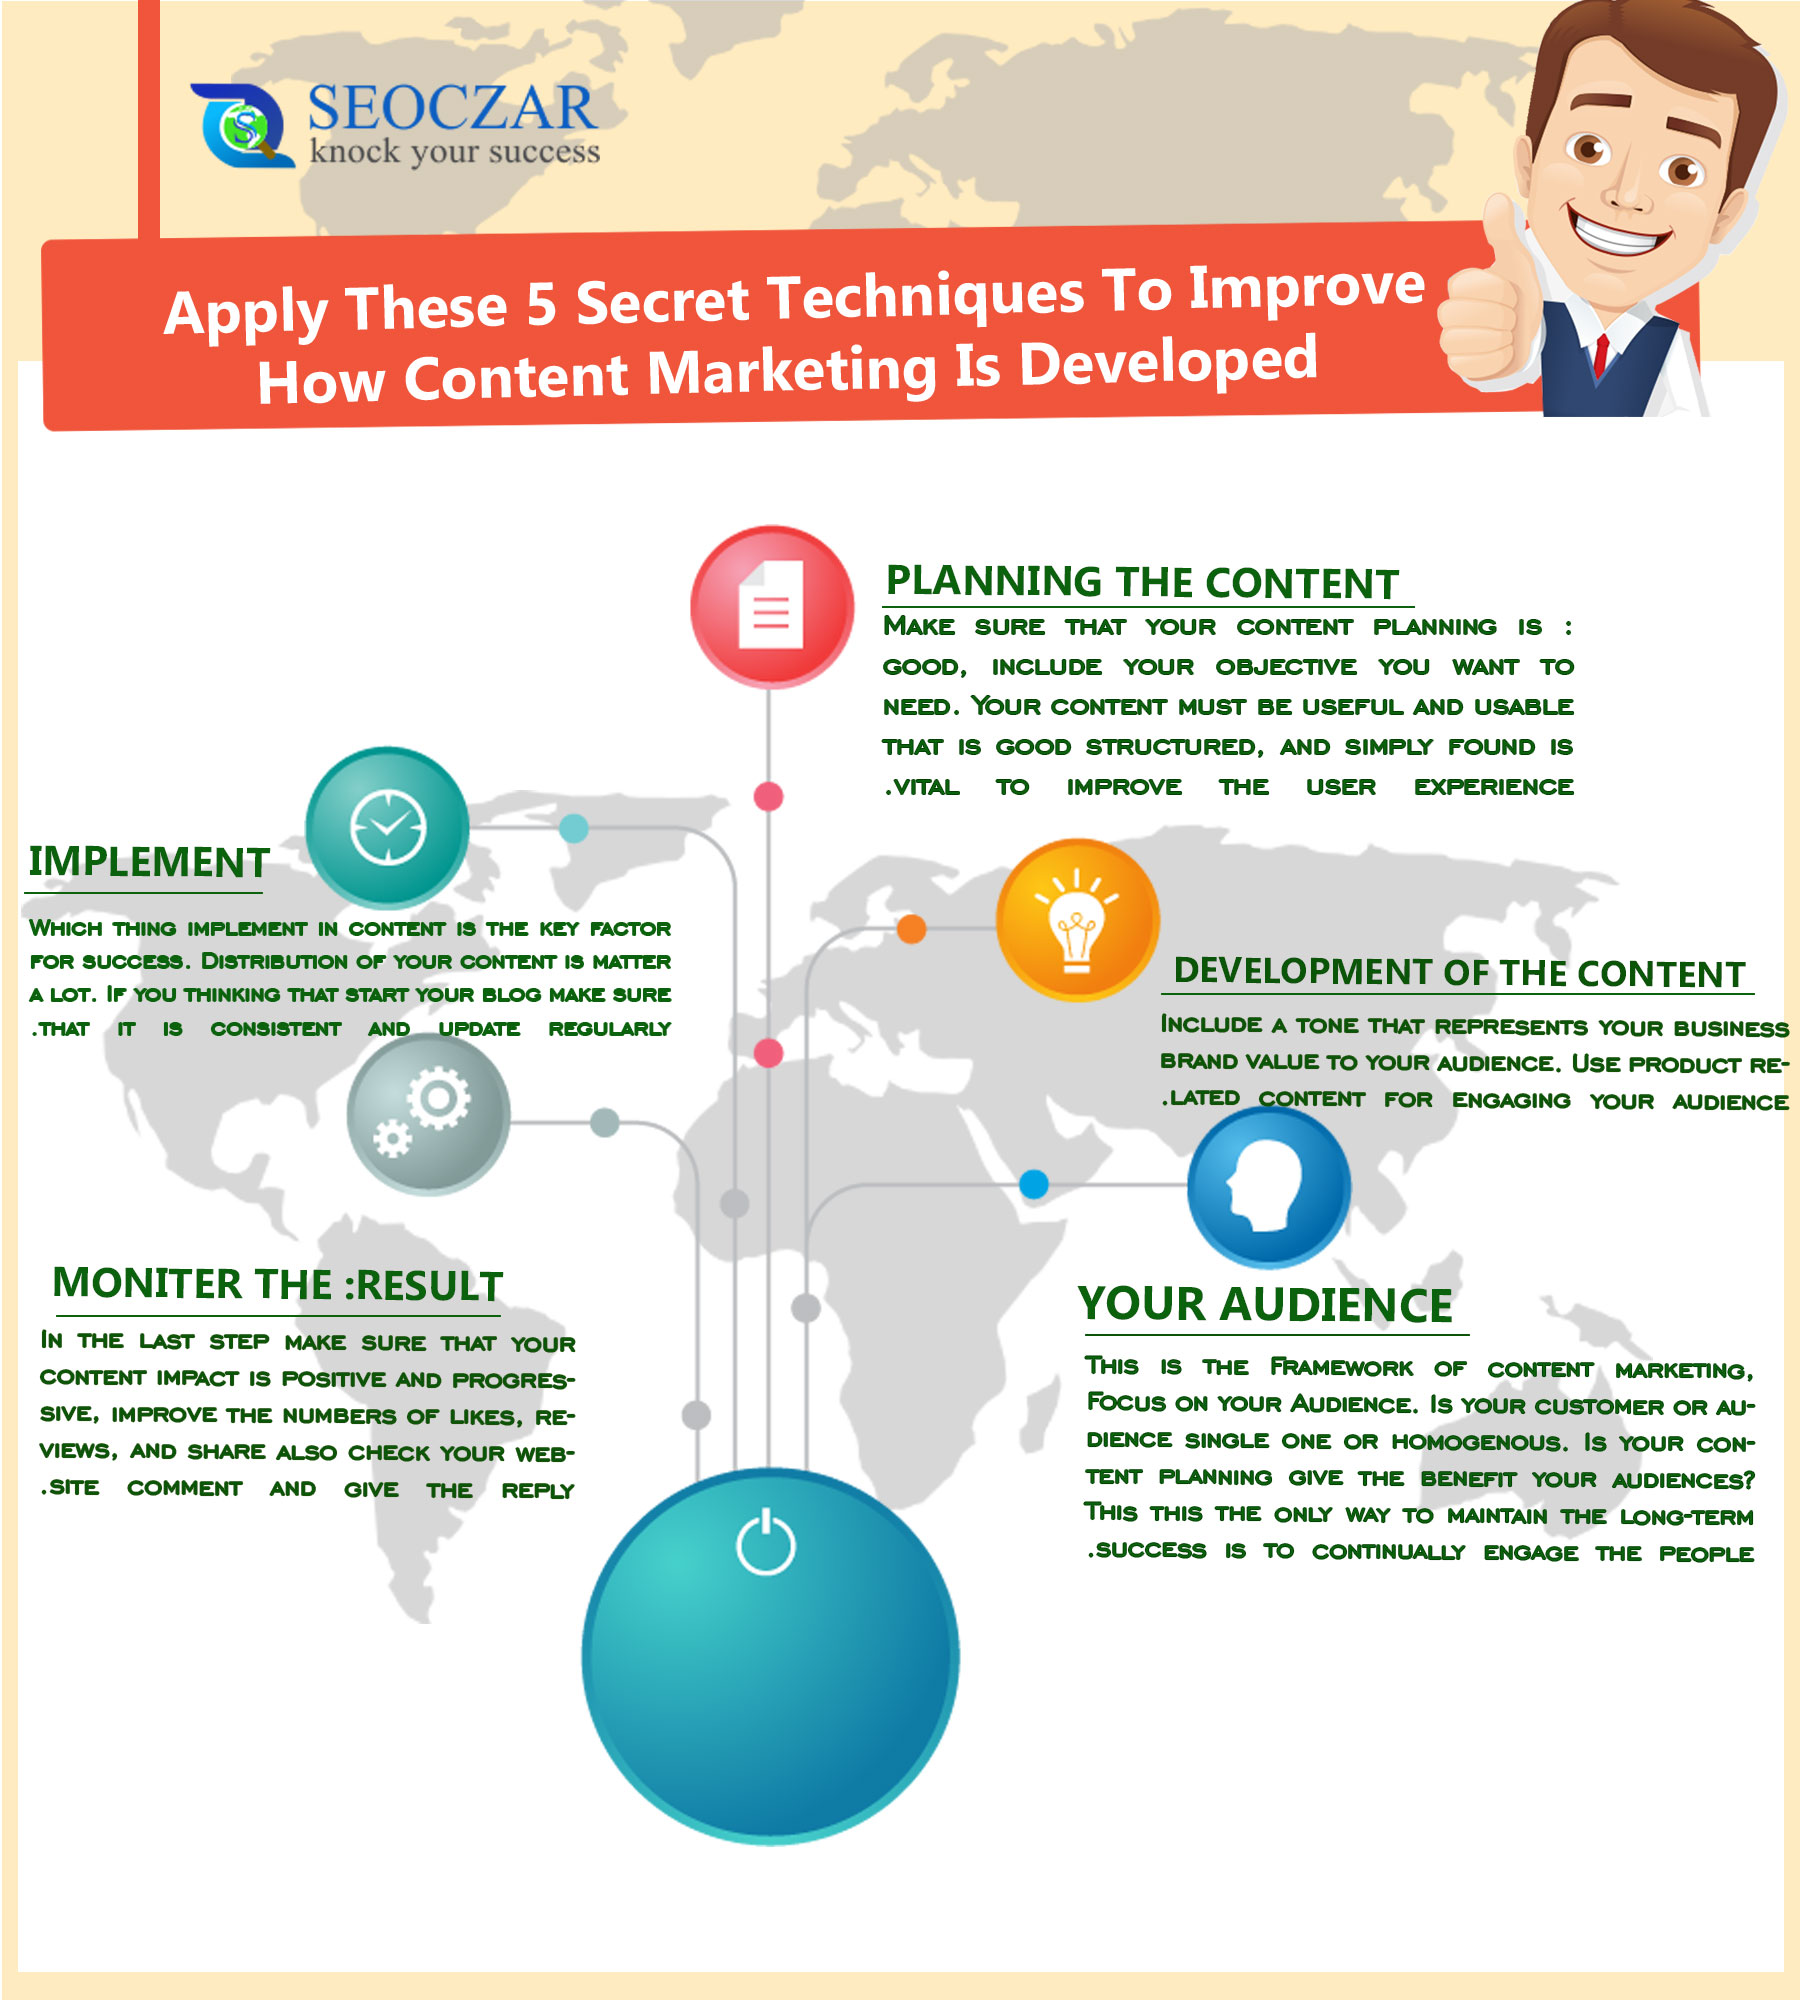 How Content Marketing Is Developed